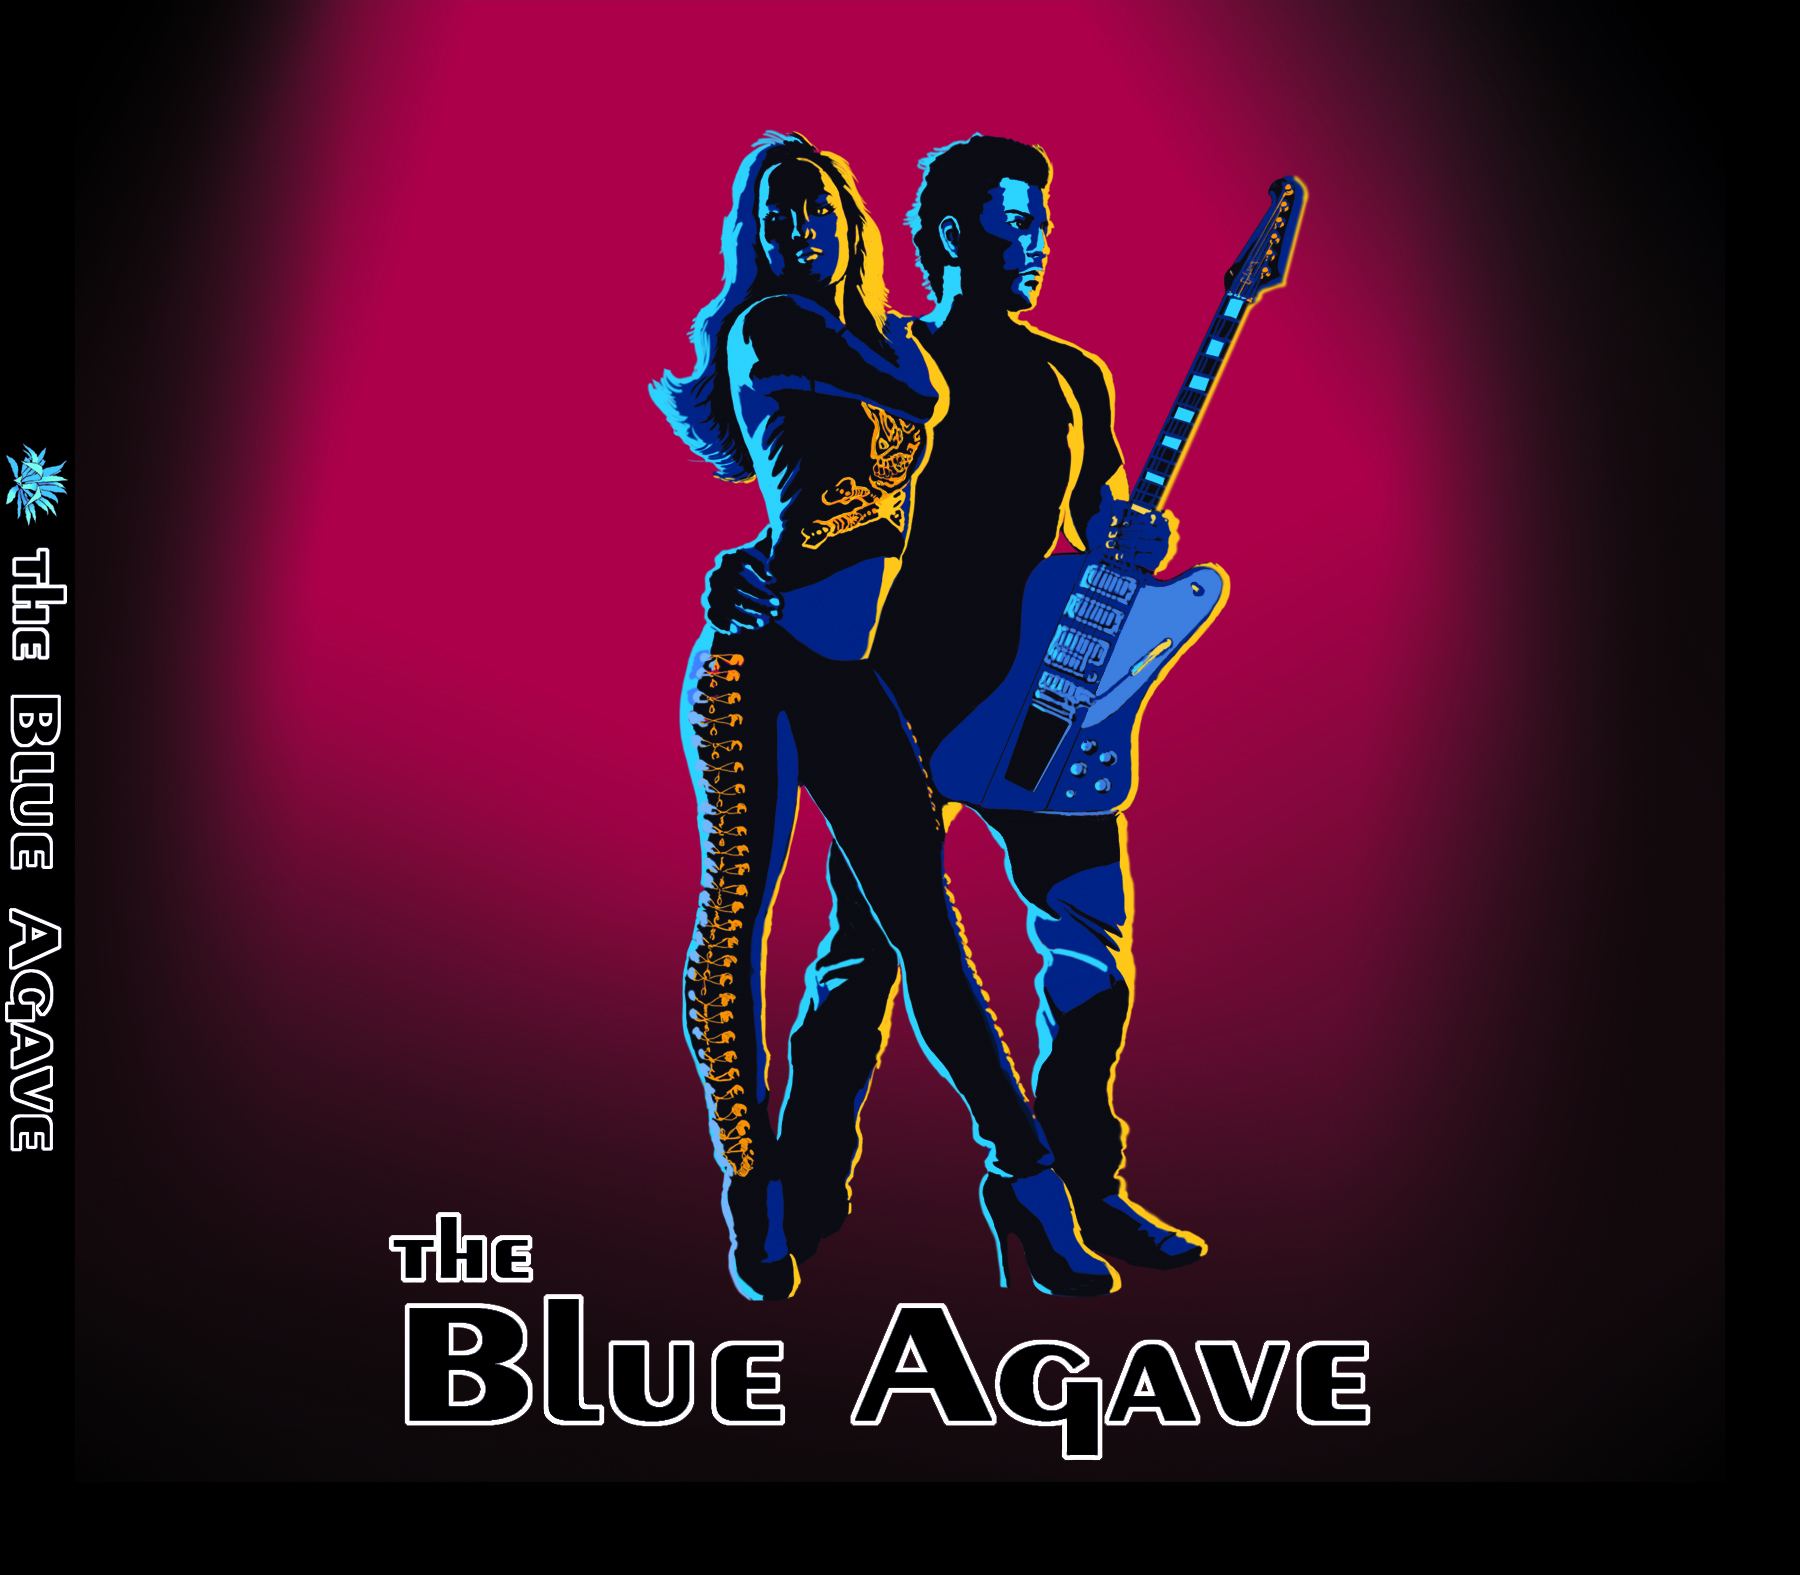 The Blue Agave LP